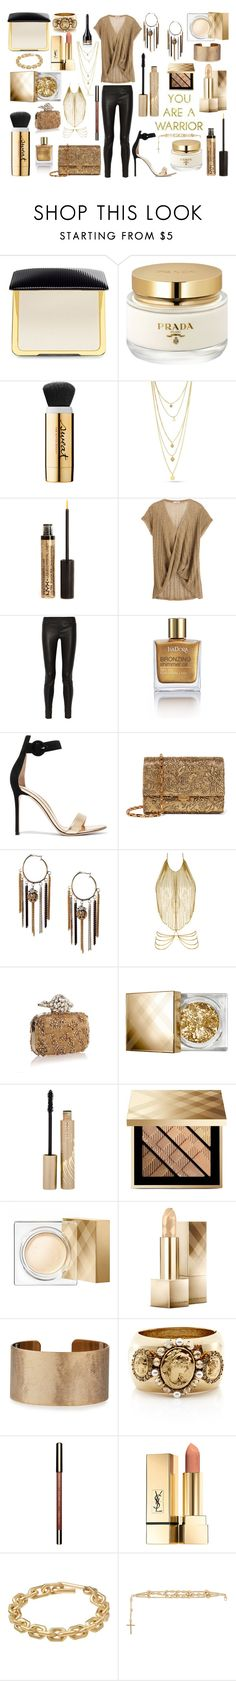 """""""break the chain"""" by royceri ❤ liked on Polyvore featuring Tom Ford, Prada, NYX, Calypso St. Barth, Helmut Lang, Isadora, Gianvito Rossi, Michael Kors, Agent Provocateur and Jimmy Choo"""